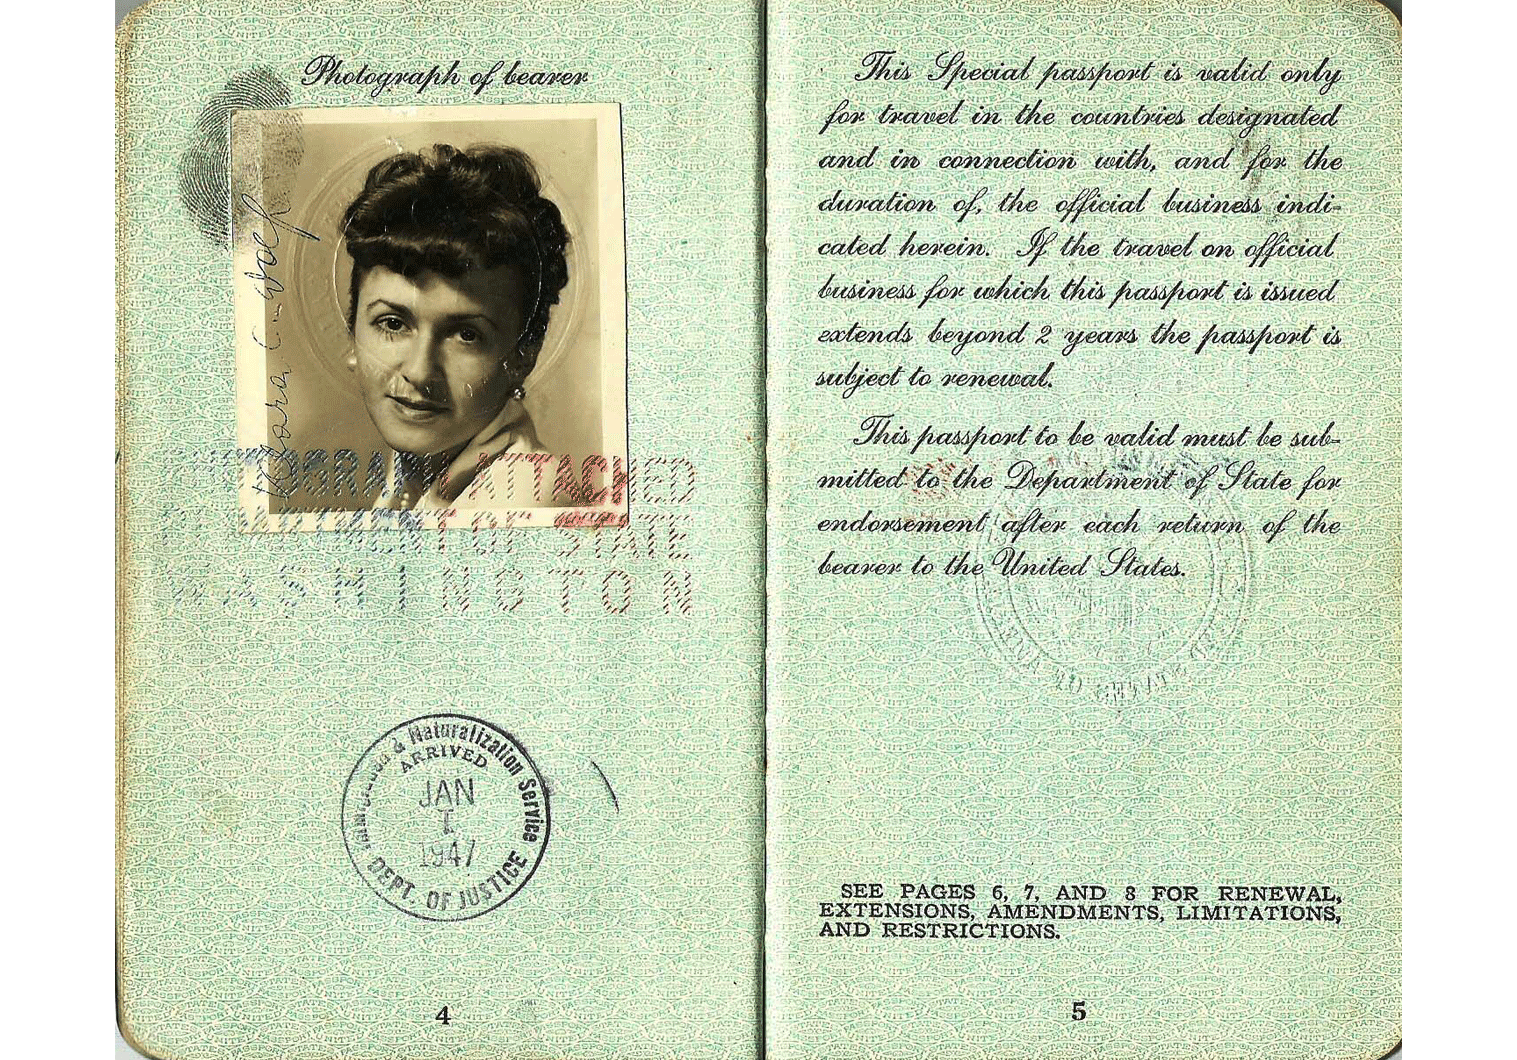 1945 US special passport